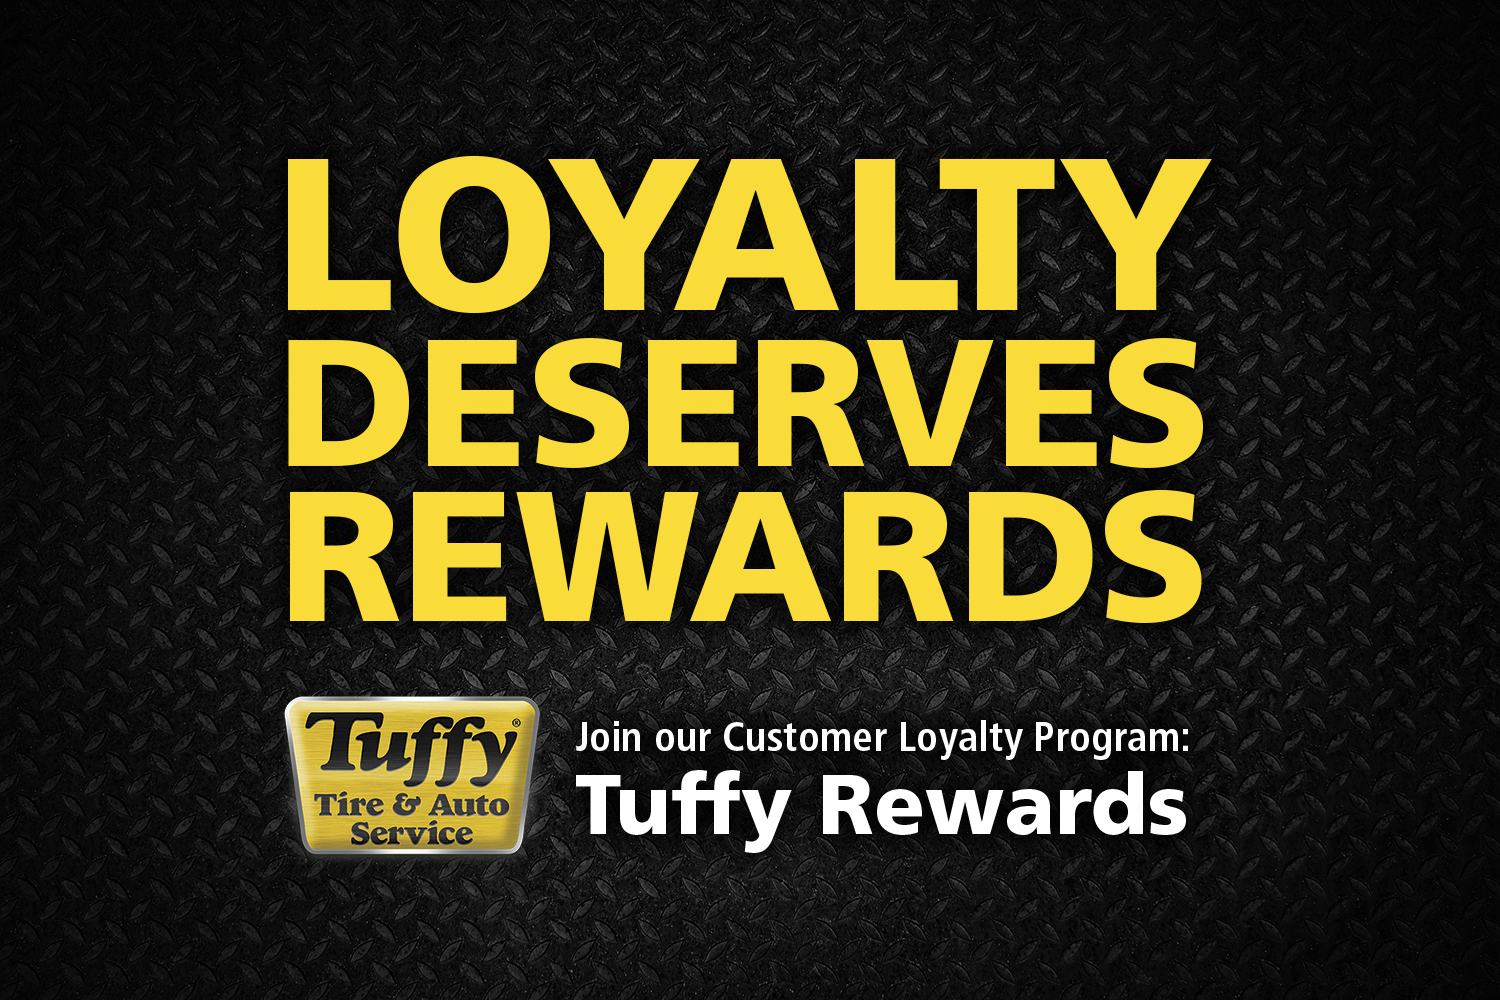 Tuffy rewards eblast copy